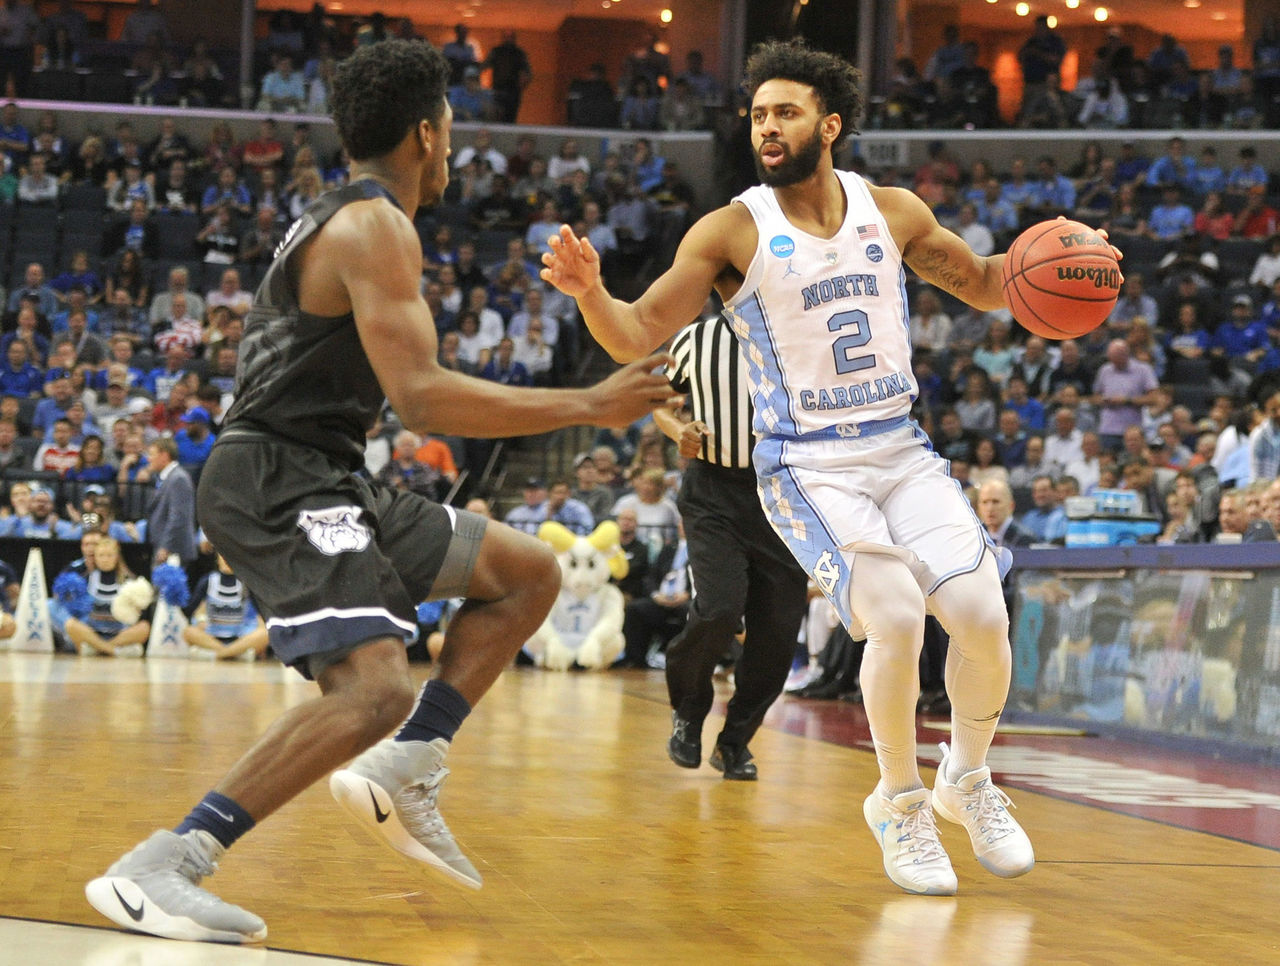 Cropped 2017 03 24t232809z 169573098 nocid rtrmadp 3 ncaa basketball ncaa tournament south regional north carolina vs butler